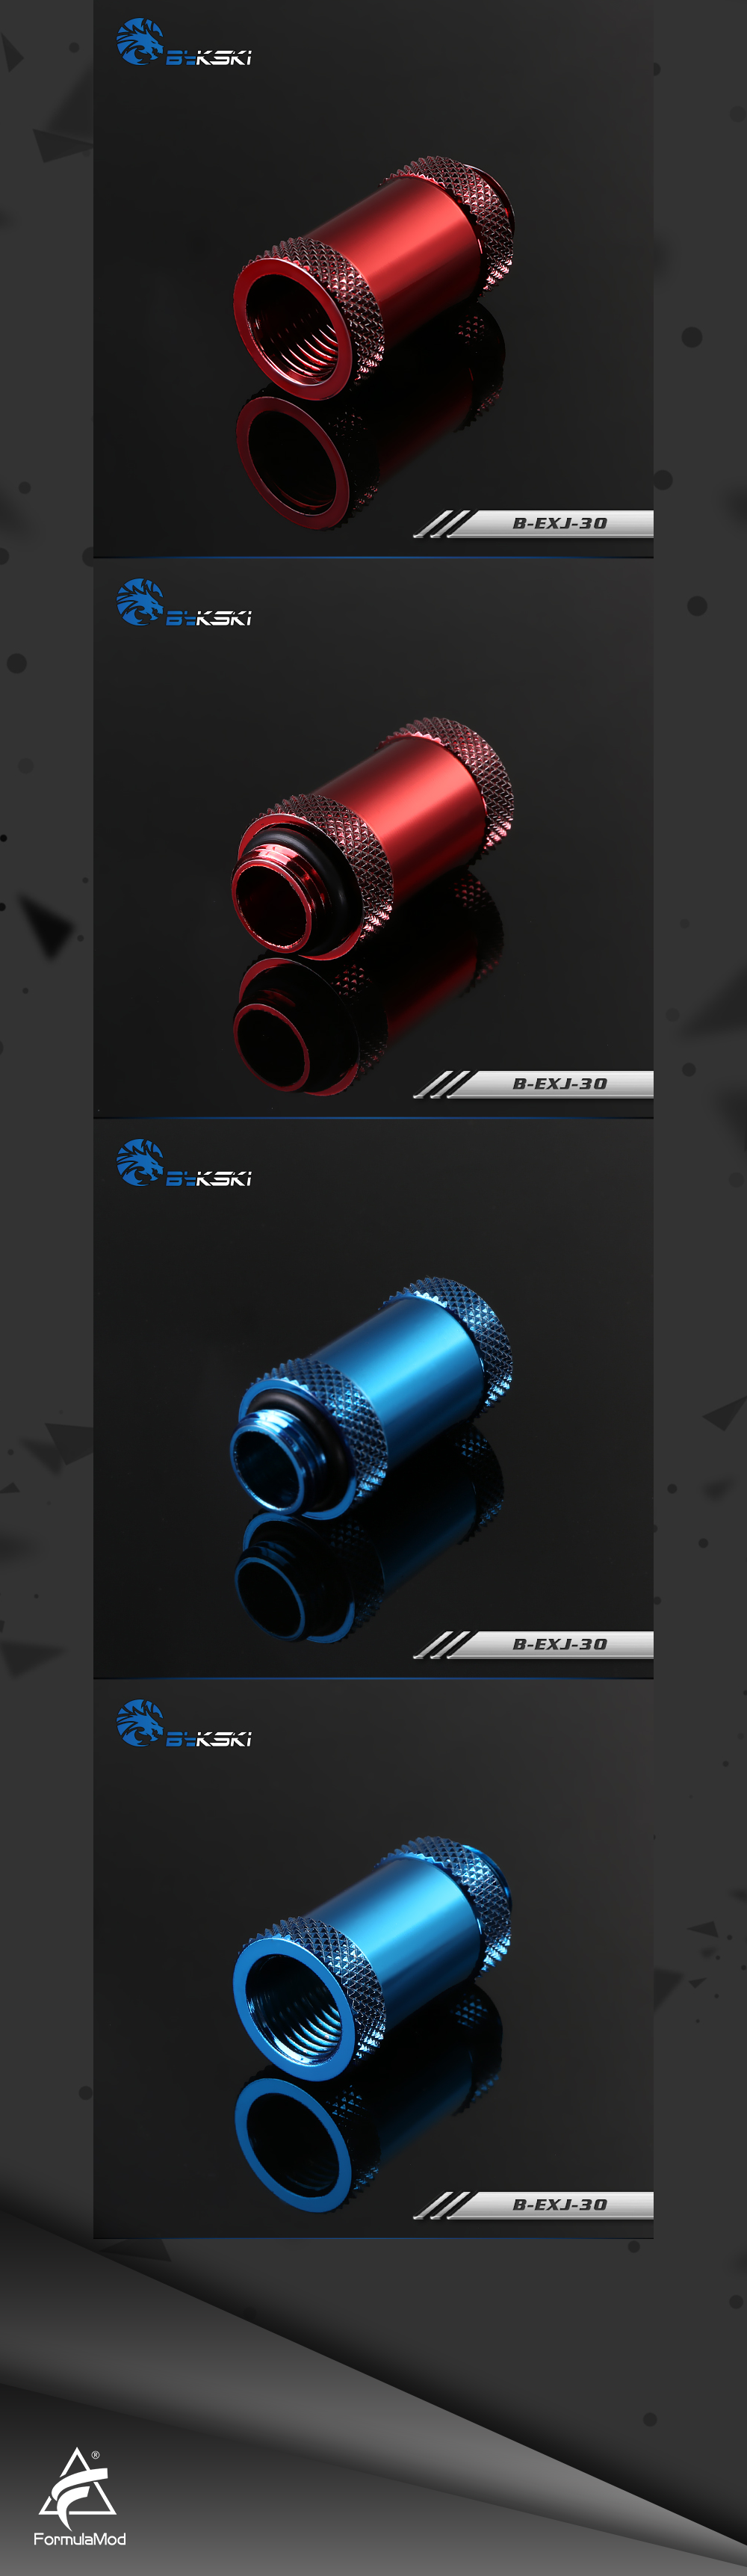 Bykski B-EXJ-30, 30mm Male To Female Extender Fittings, Boutique Diamond Pattern, Multiple Color G1/4 Male To Female Fittings